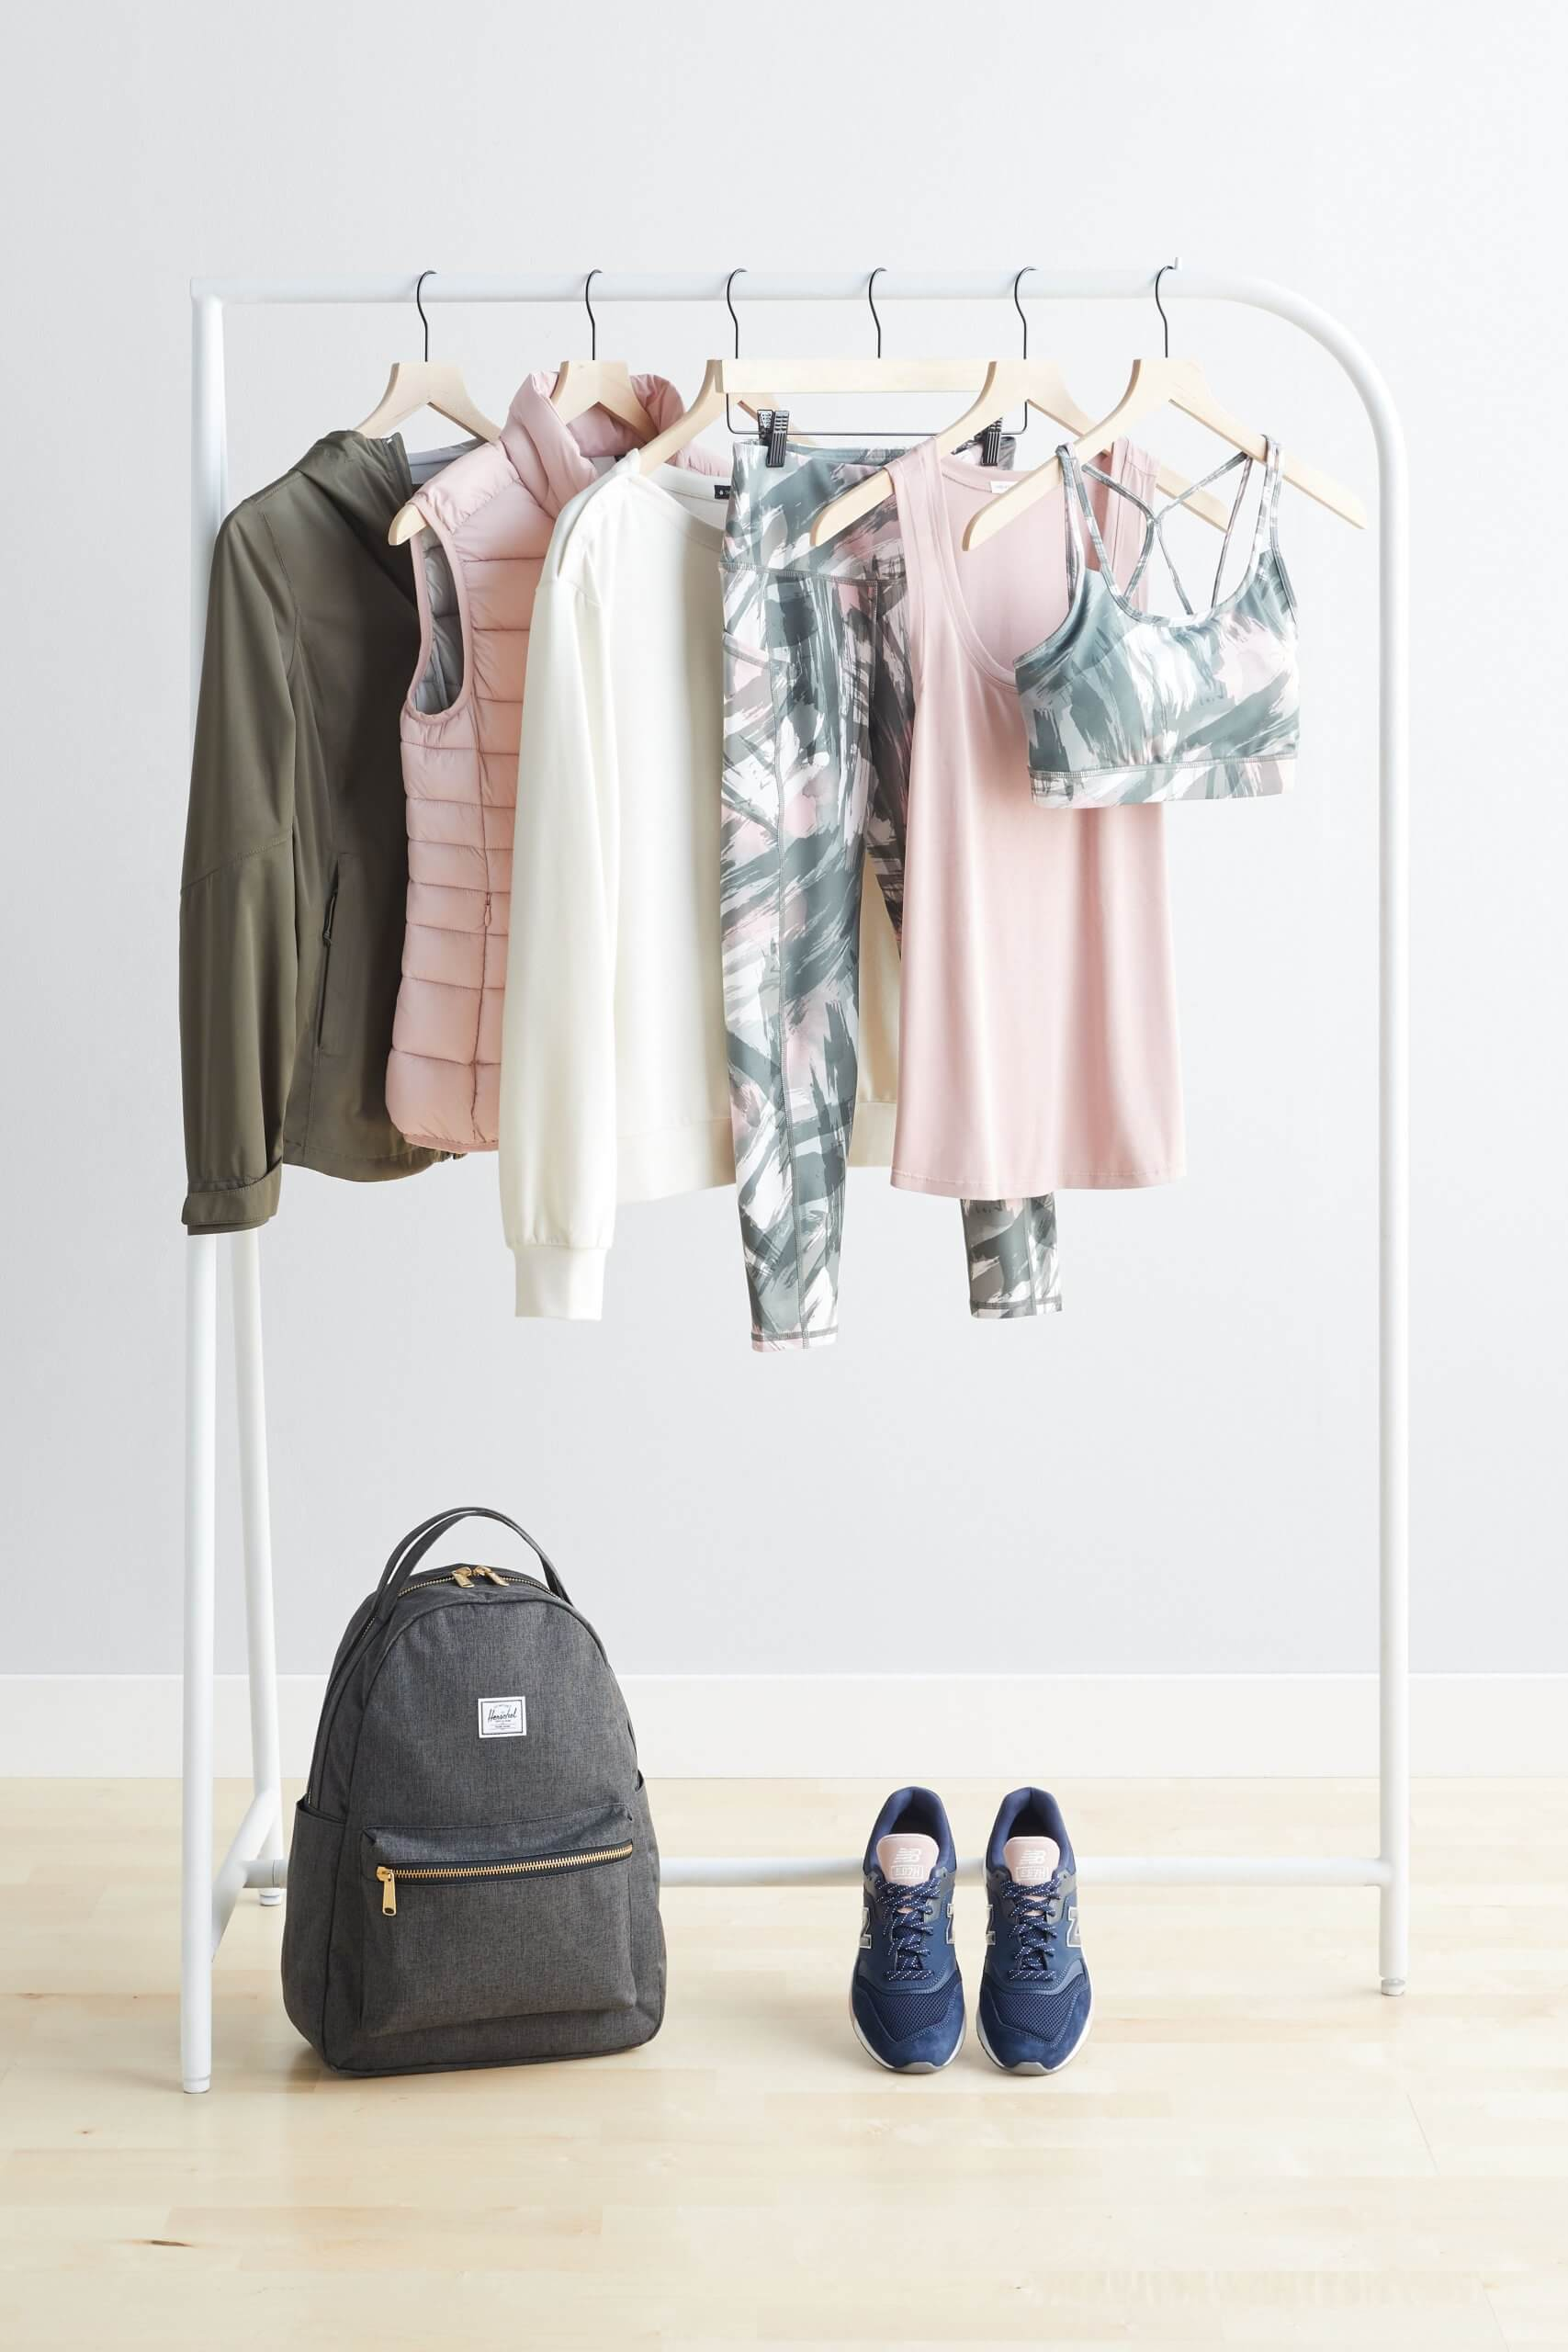 Stitch Fix Women's olive jacket, pink puffer vest, white crew neck sweatshirt, tropical print leggings, pink tank and tropical print sports bra on a rack. Grey backpack and navy sneakers on the floor.